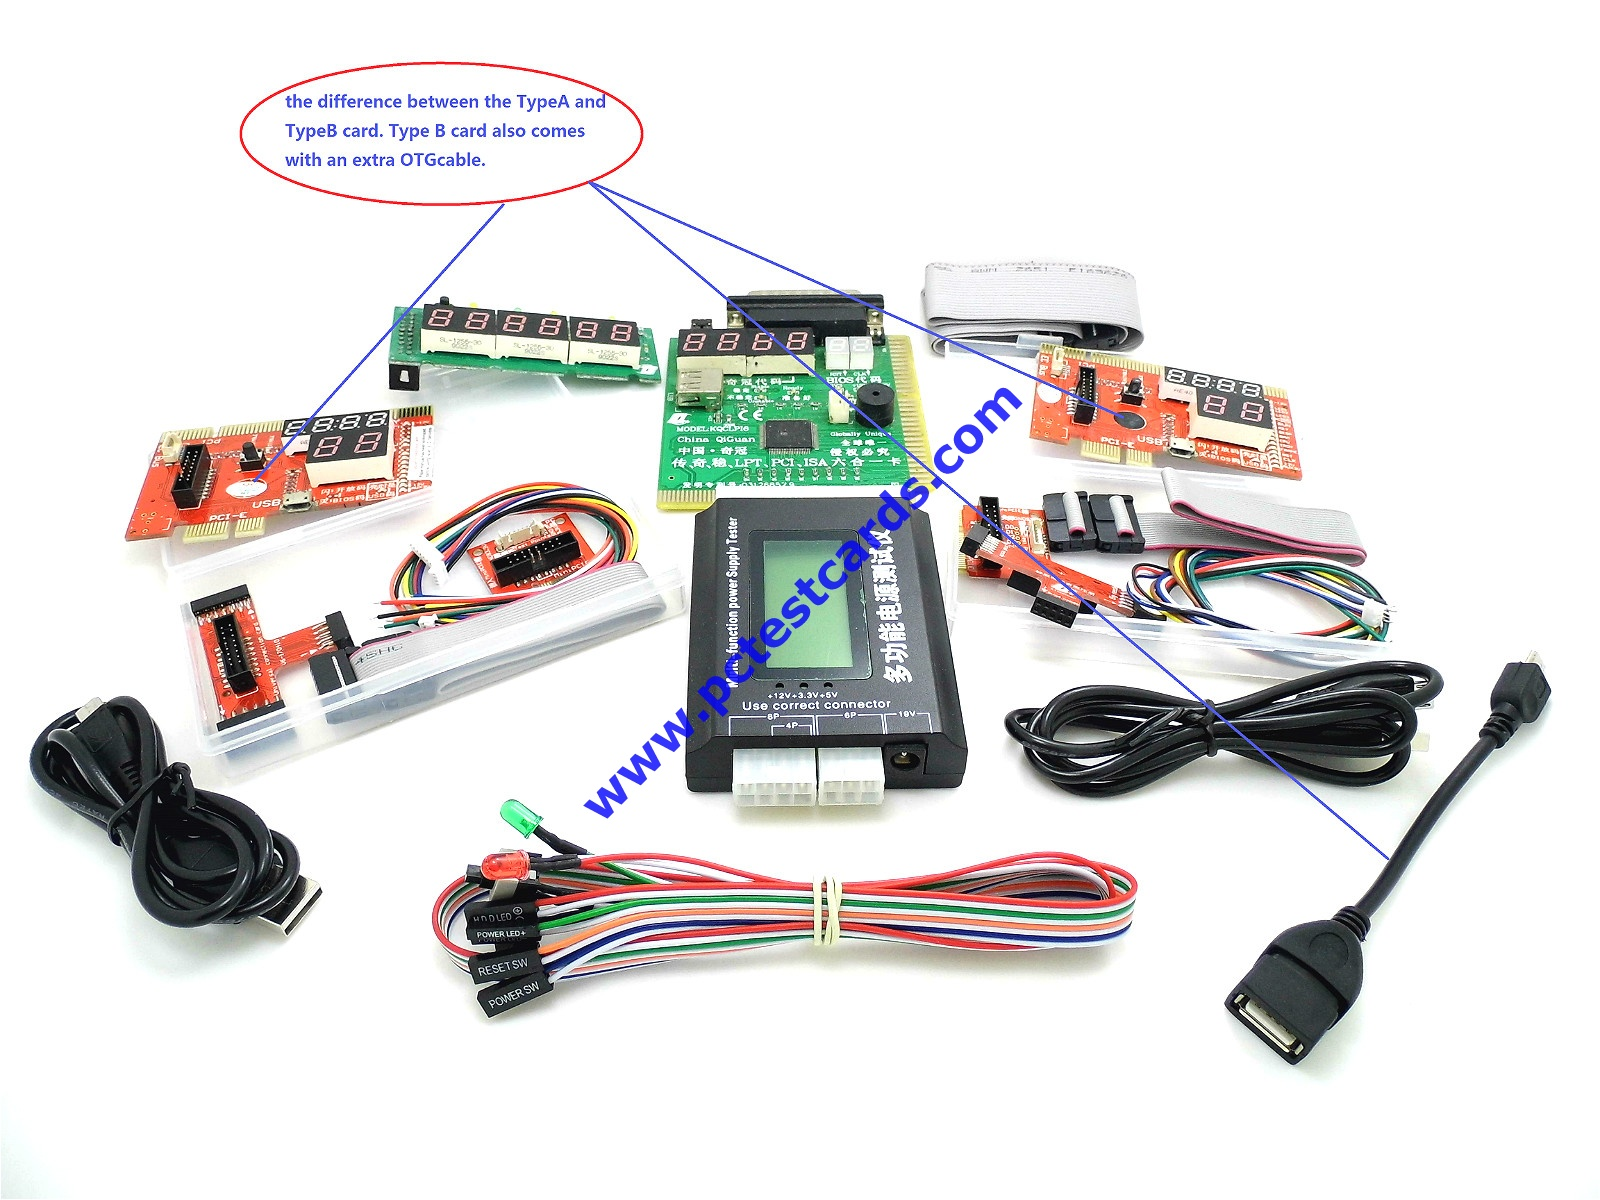 Complete set of the computer diagnostic kit total 5 items for snackpackcomp